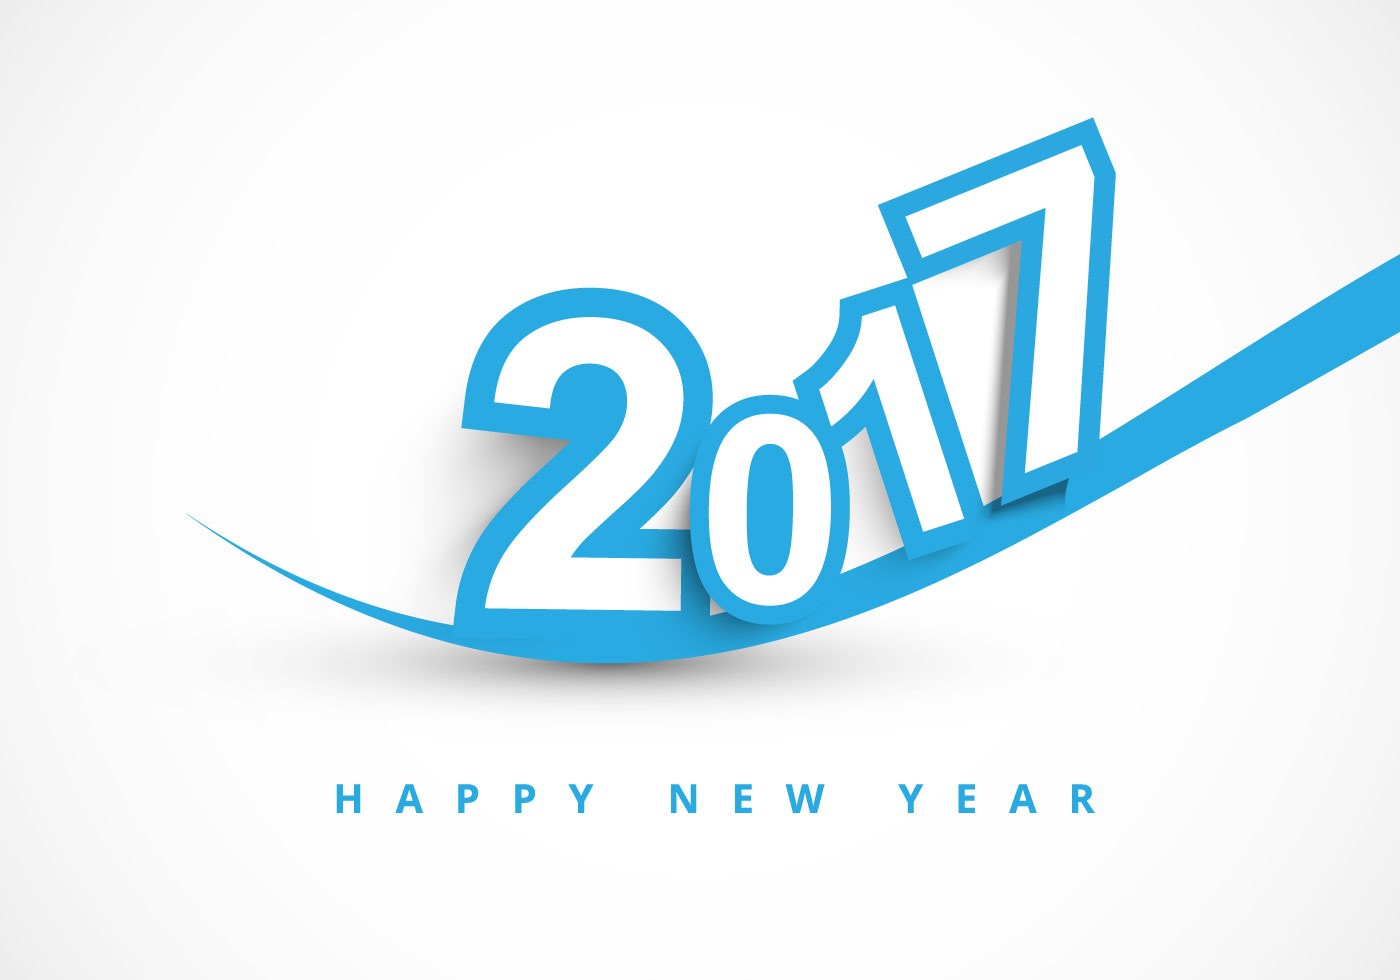 Happy-new-year-2016-text-in-color-blue-[Converted].jpg